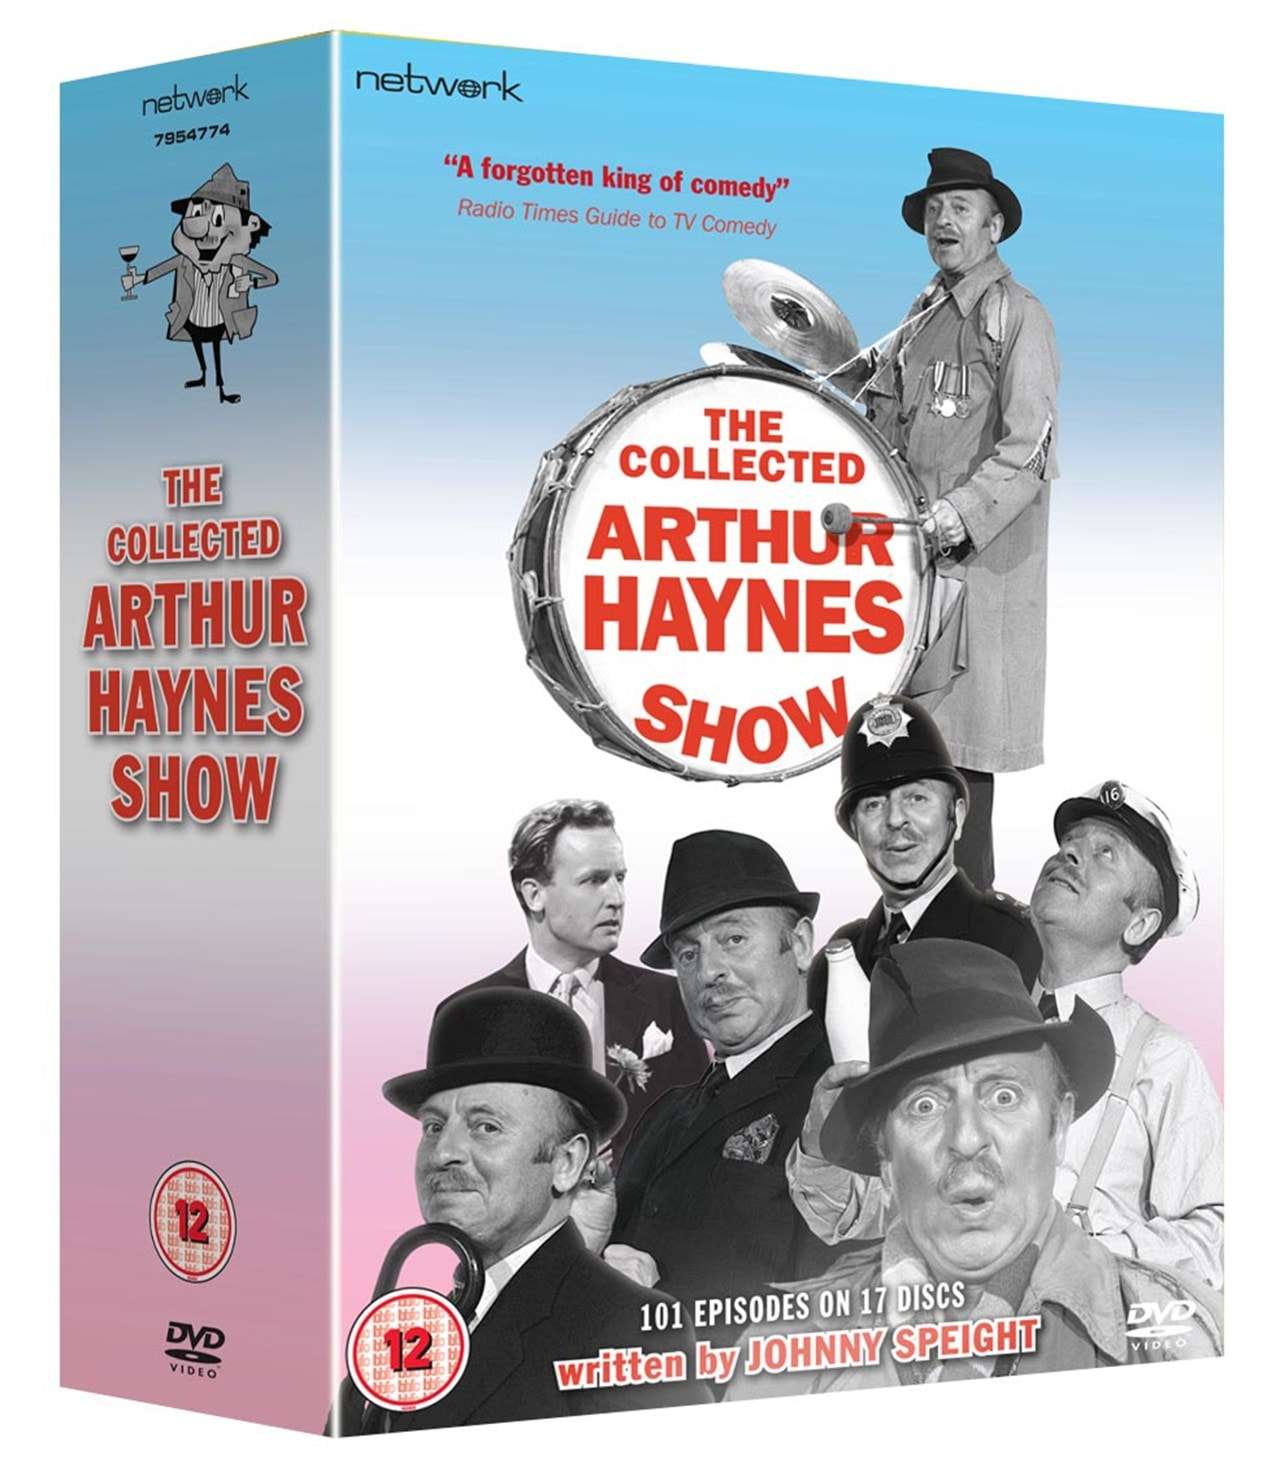 The Collected Arthur Haynes Show - 2